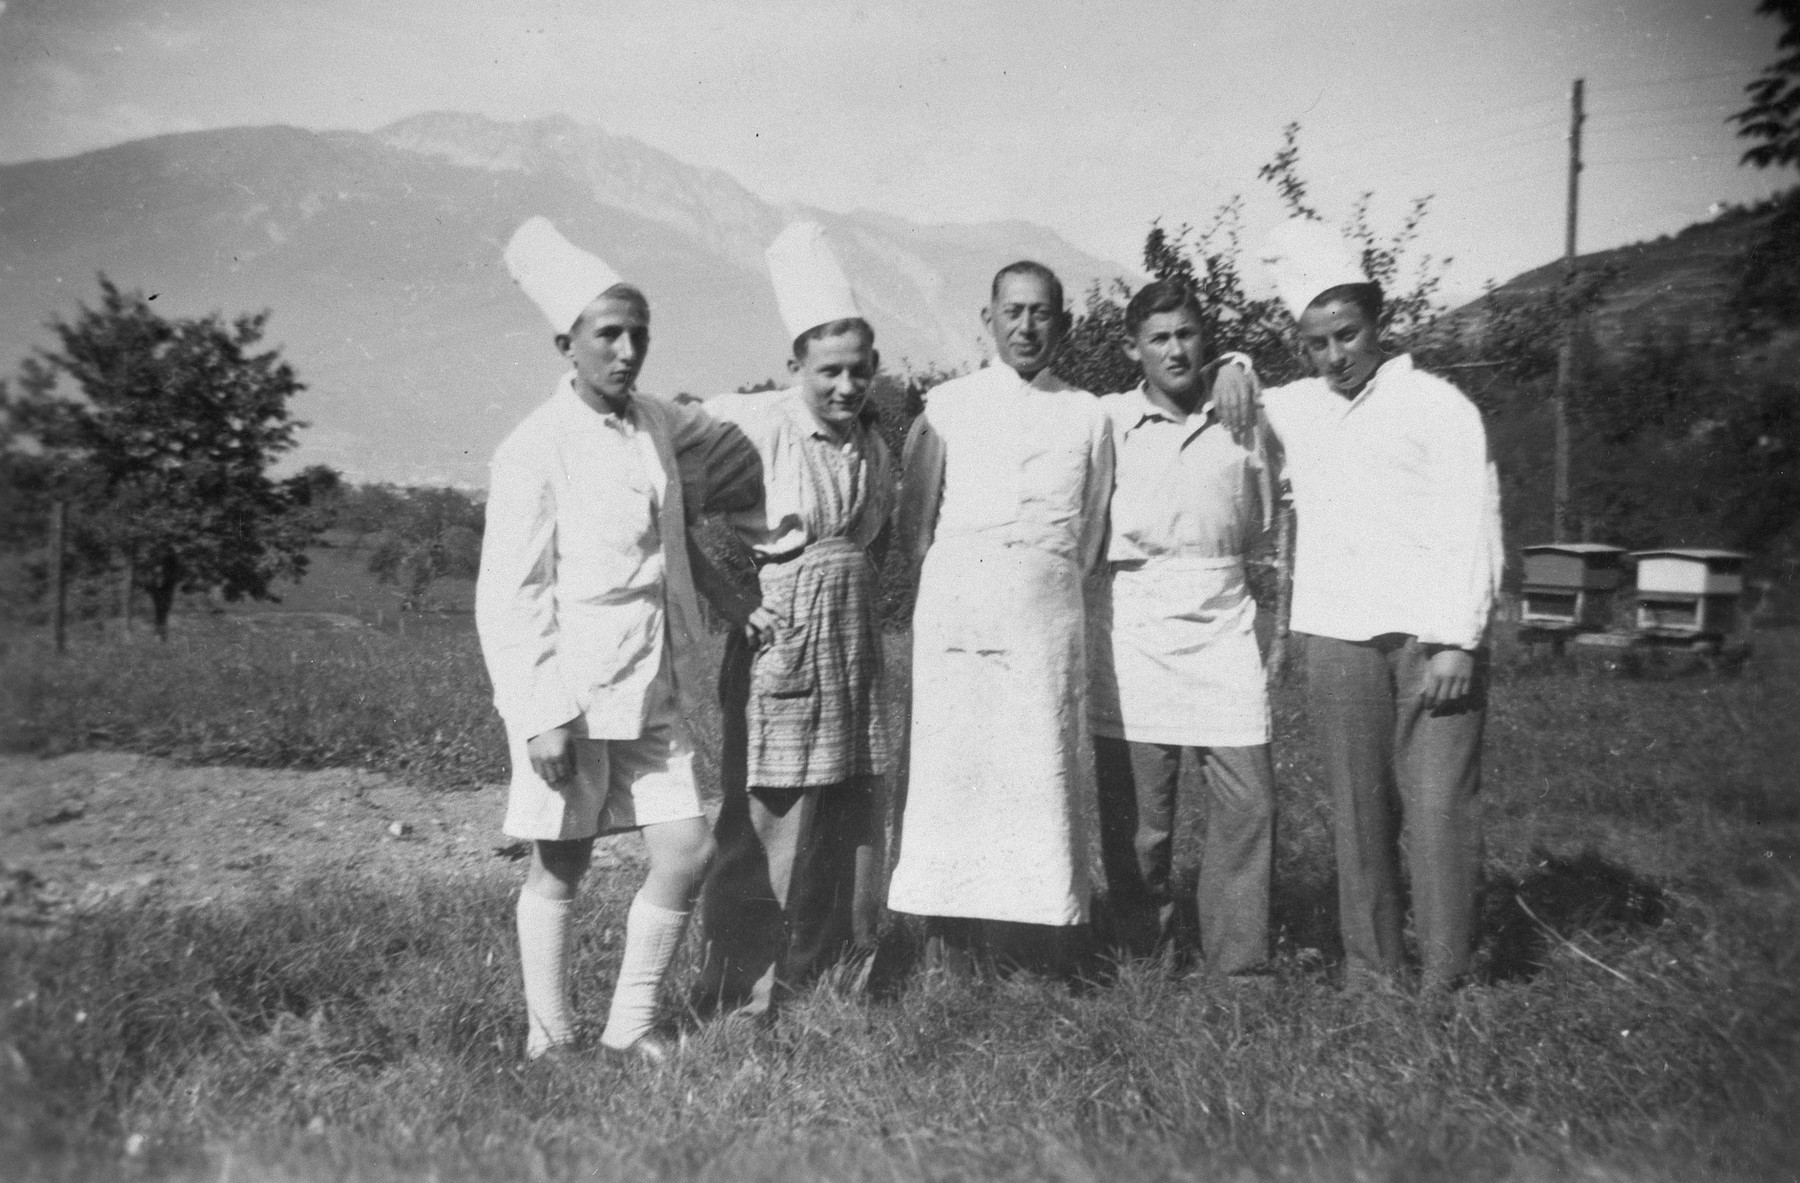 Group portrait of five men wearing chef's hats and aprons in a displaced persons' camp in Switzerland.